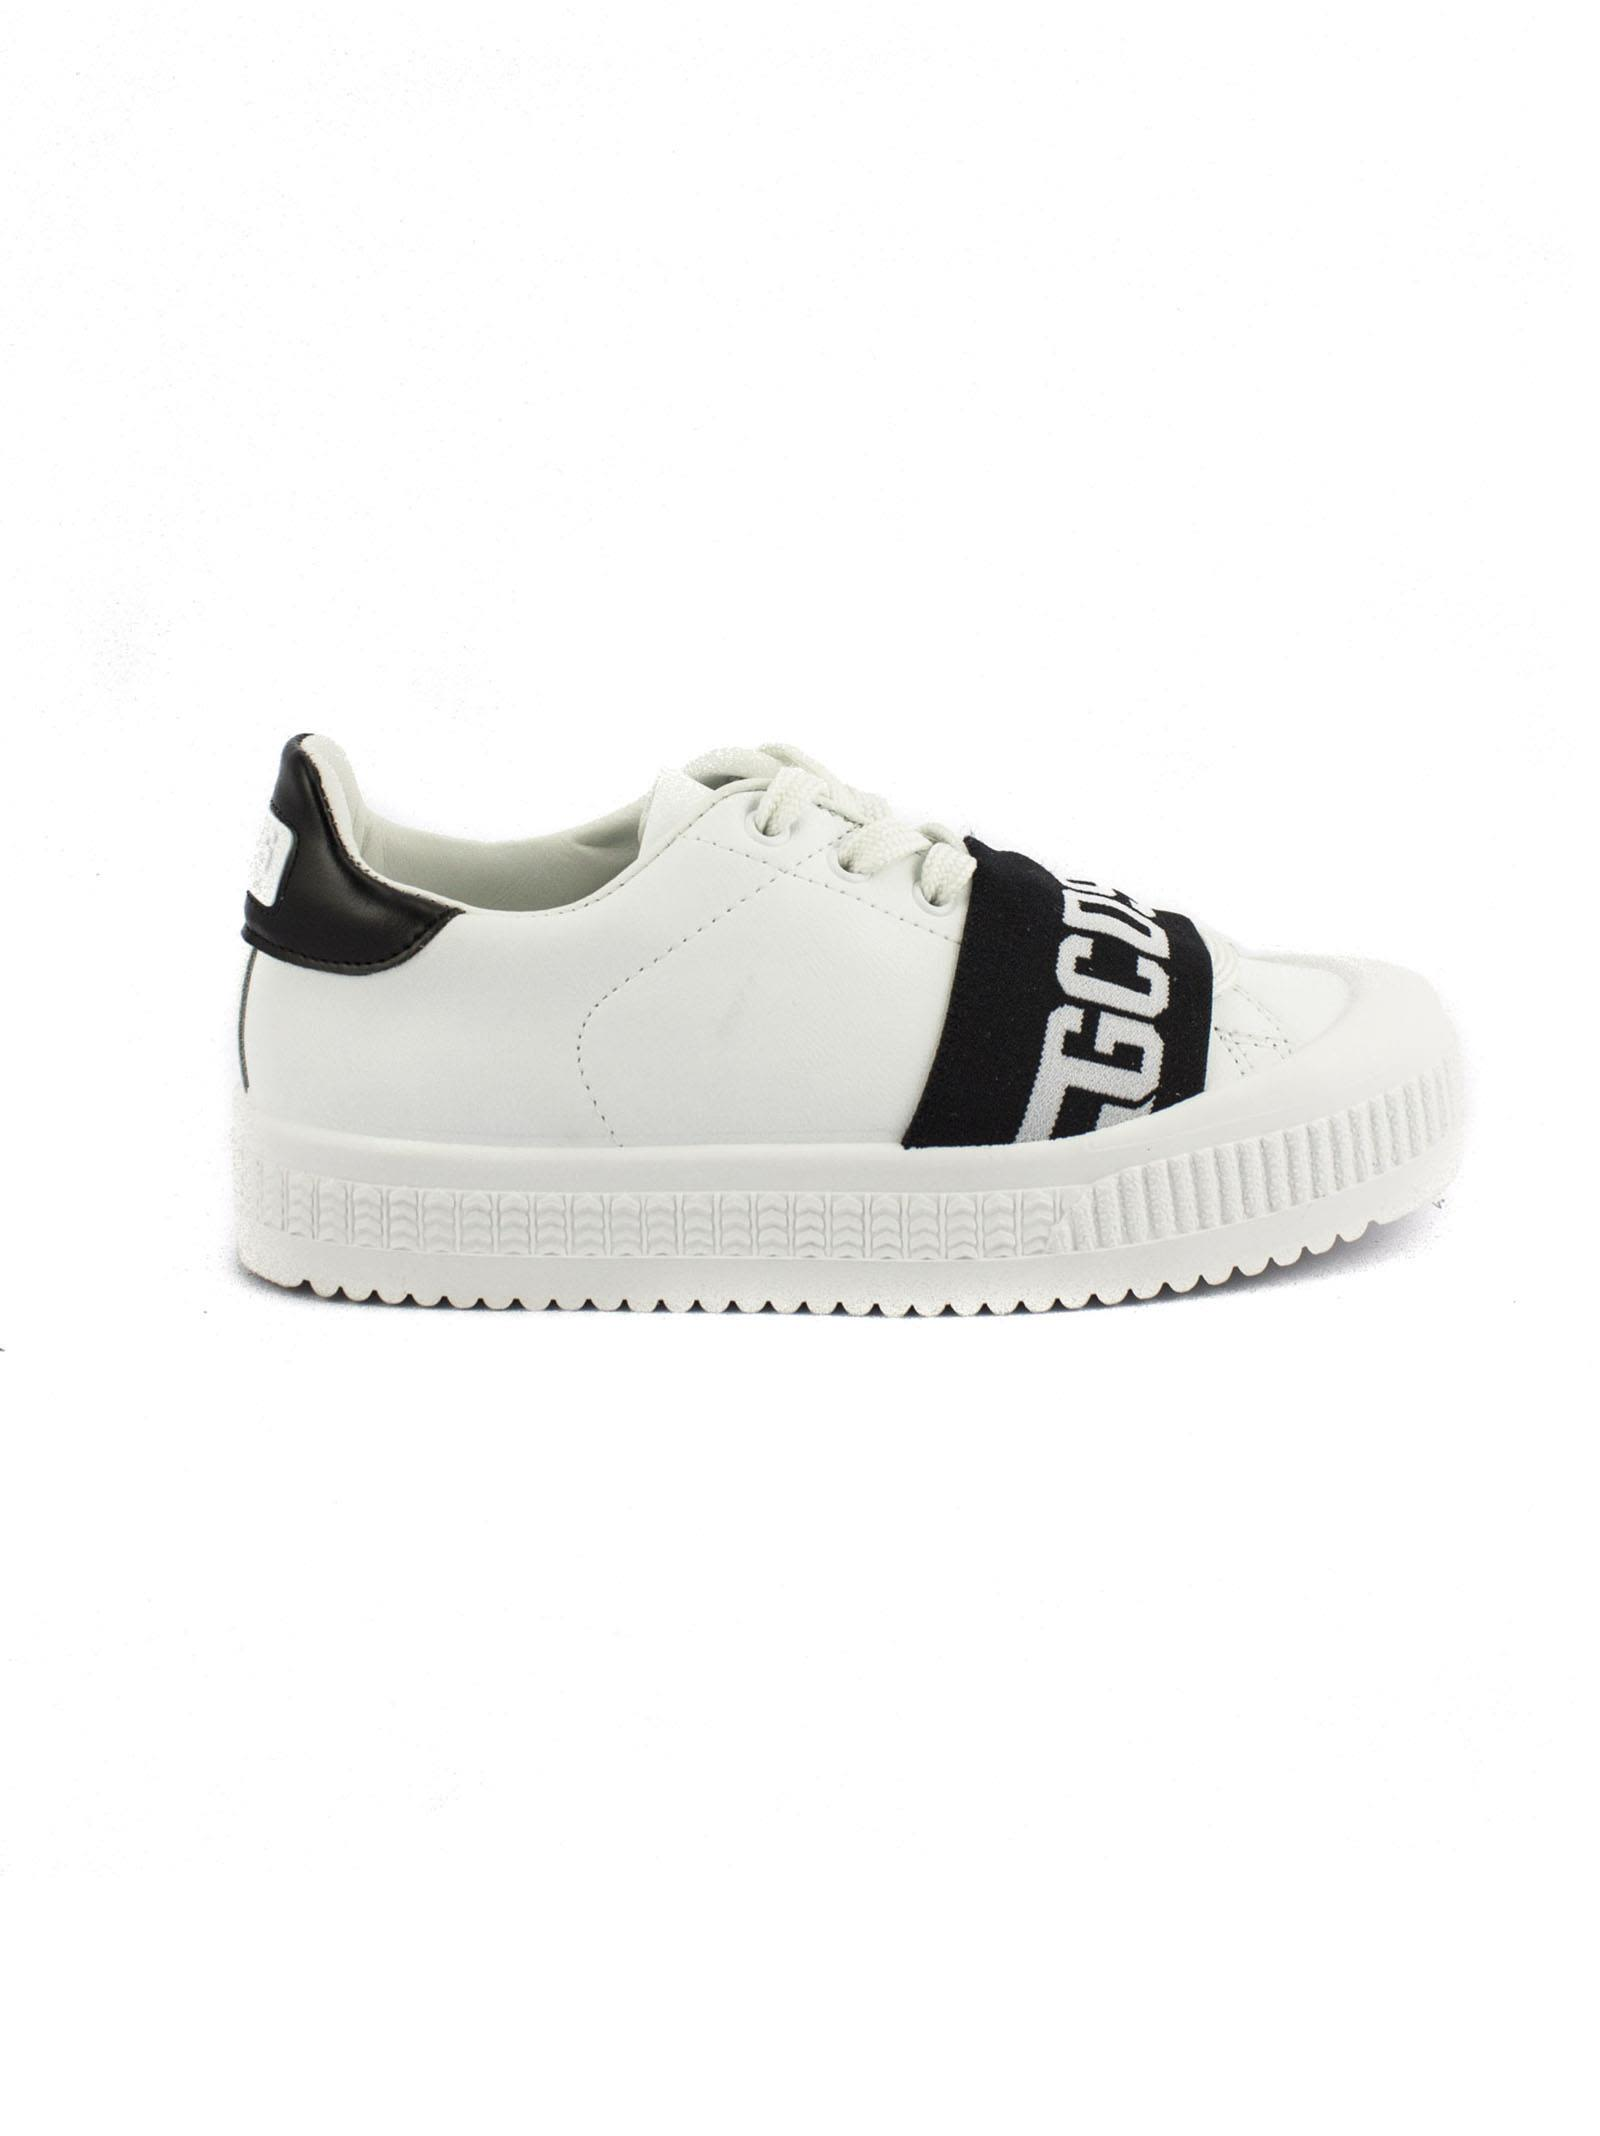 Many Styles GCDS White Leather Sneaker With Black Elastic Logo Band. Excellent Cheap Online Cheap Finishline MKUOxQ